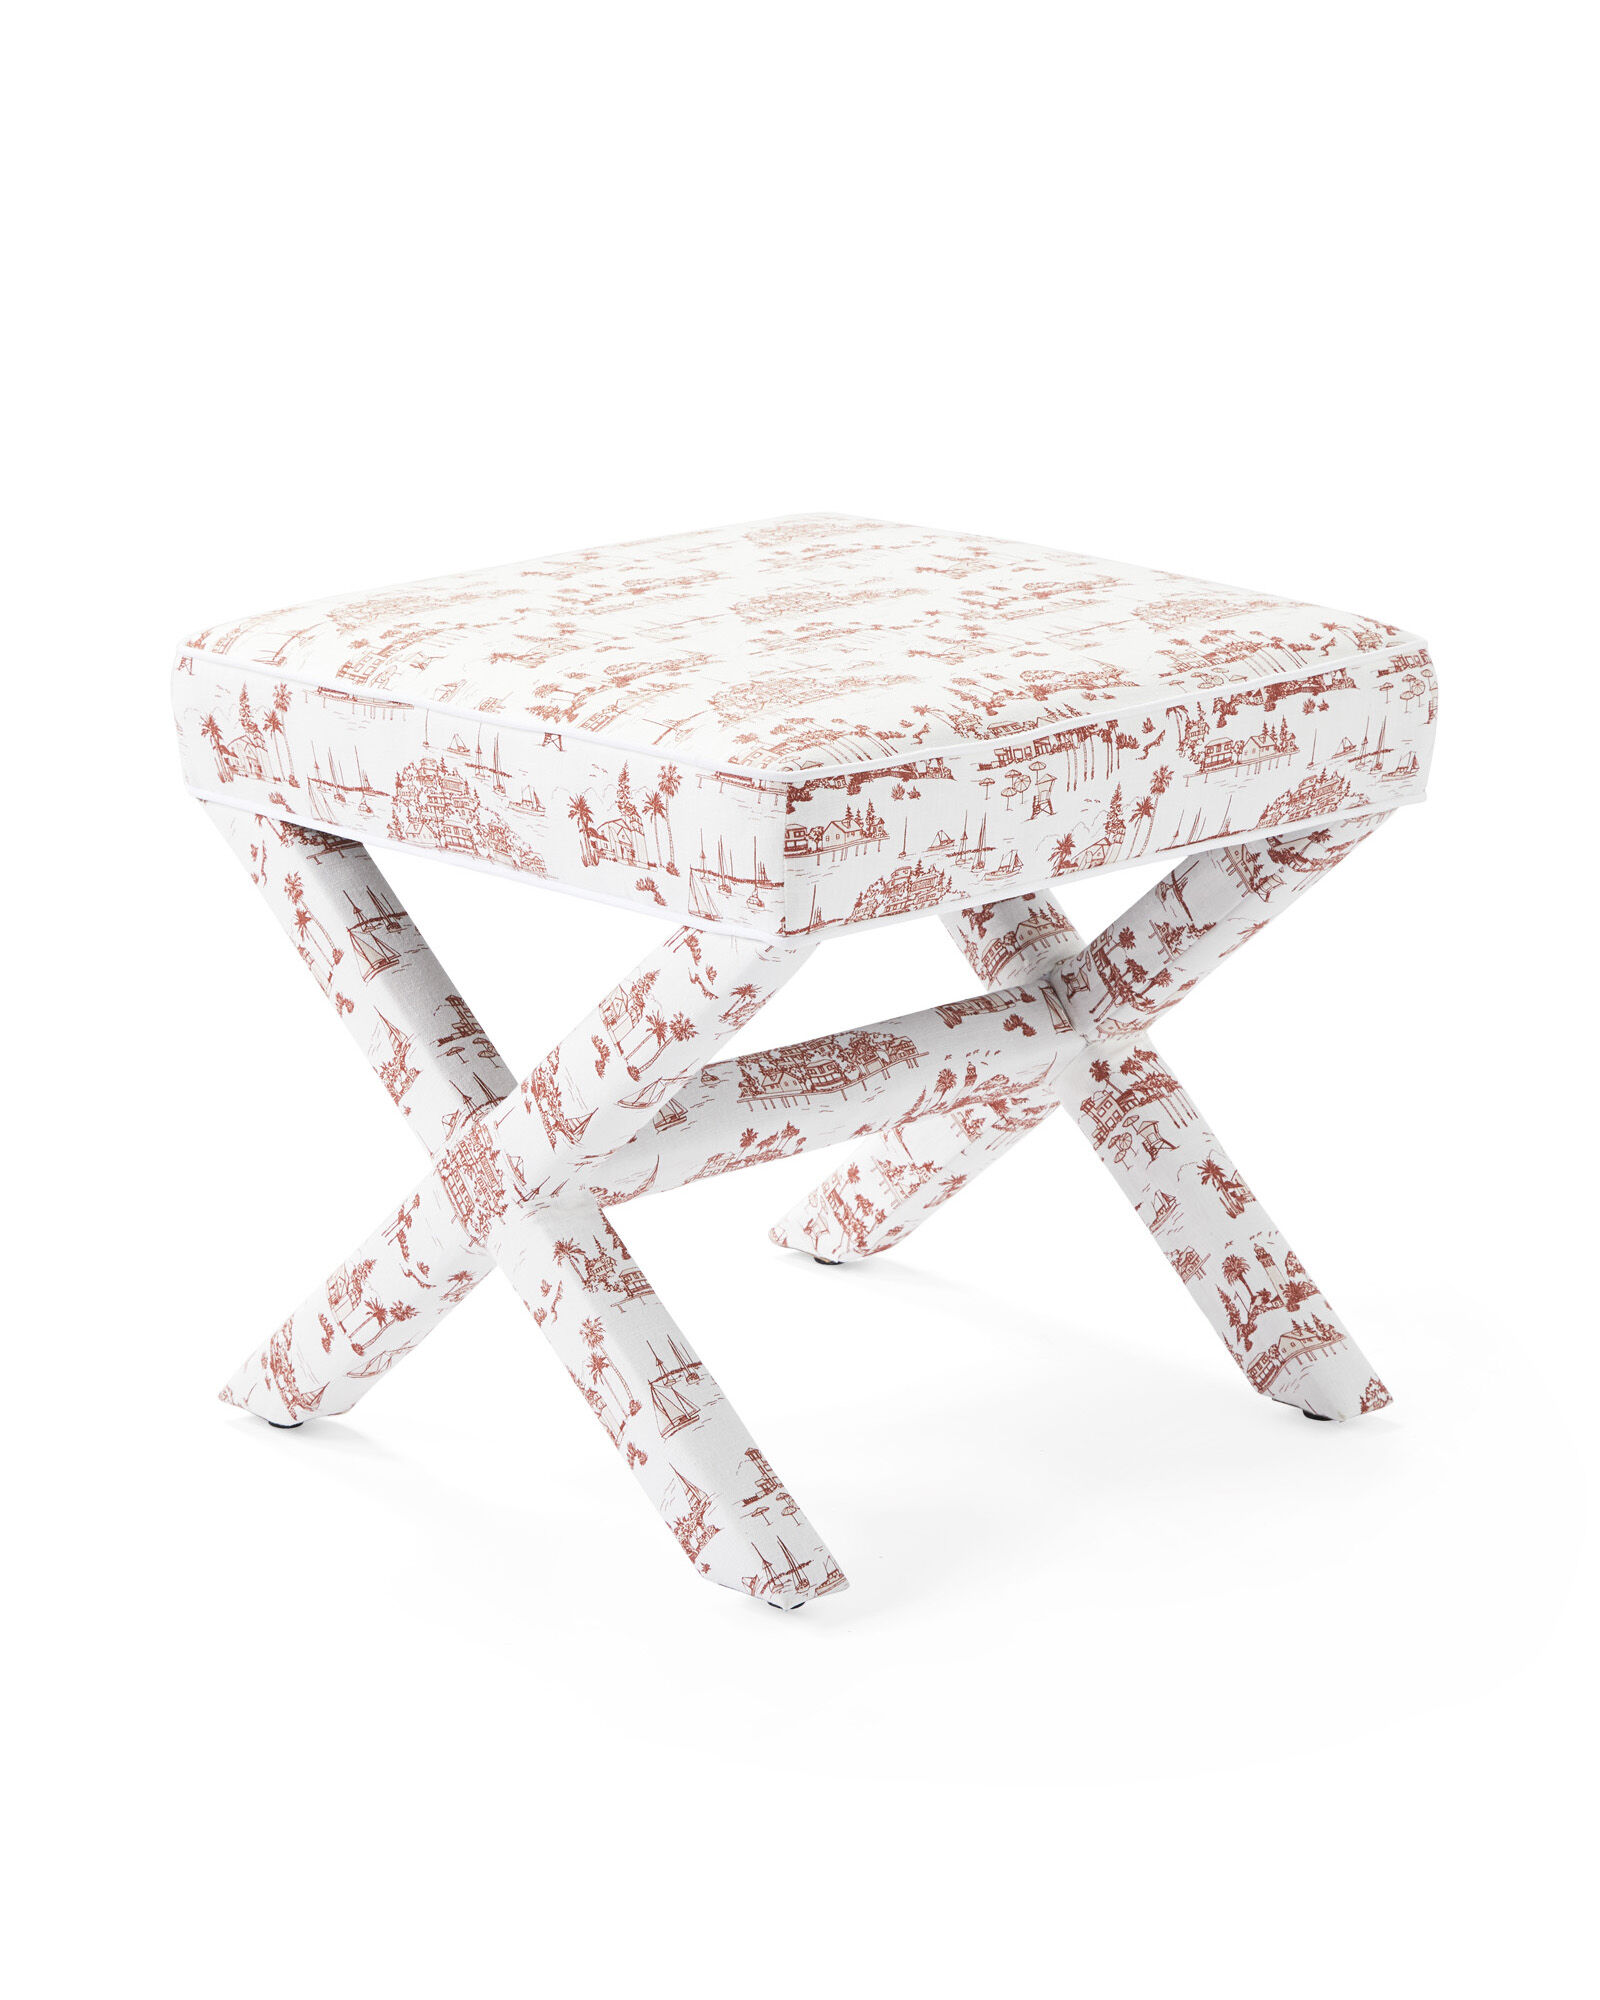 Parker X-Base Stool - Seahaven Terracotta Linen with White Piping,